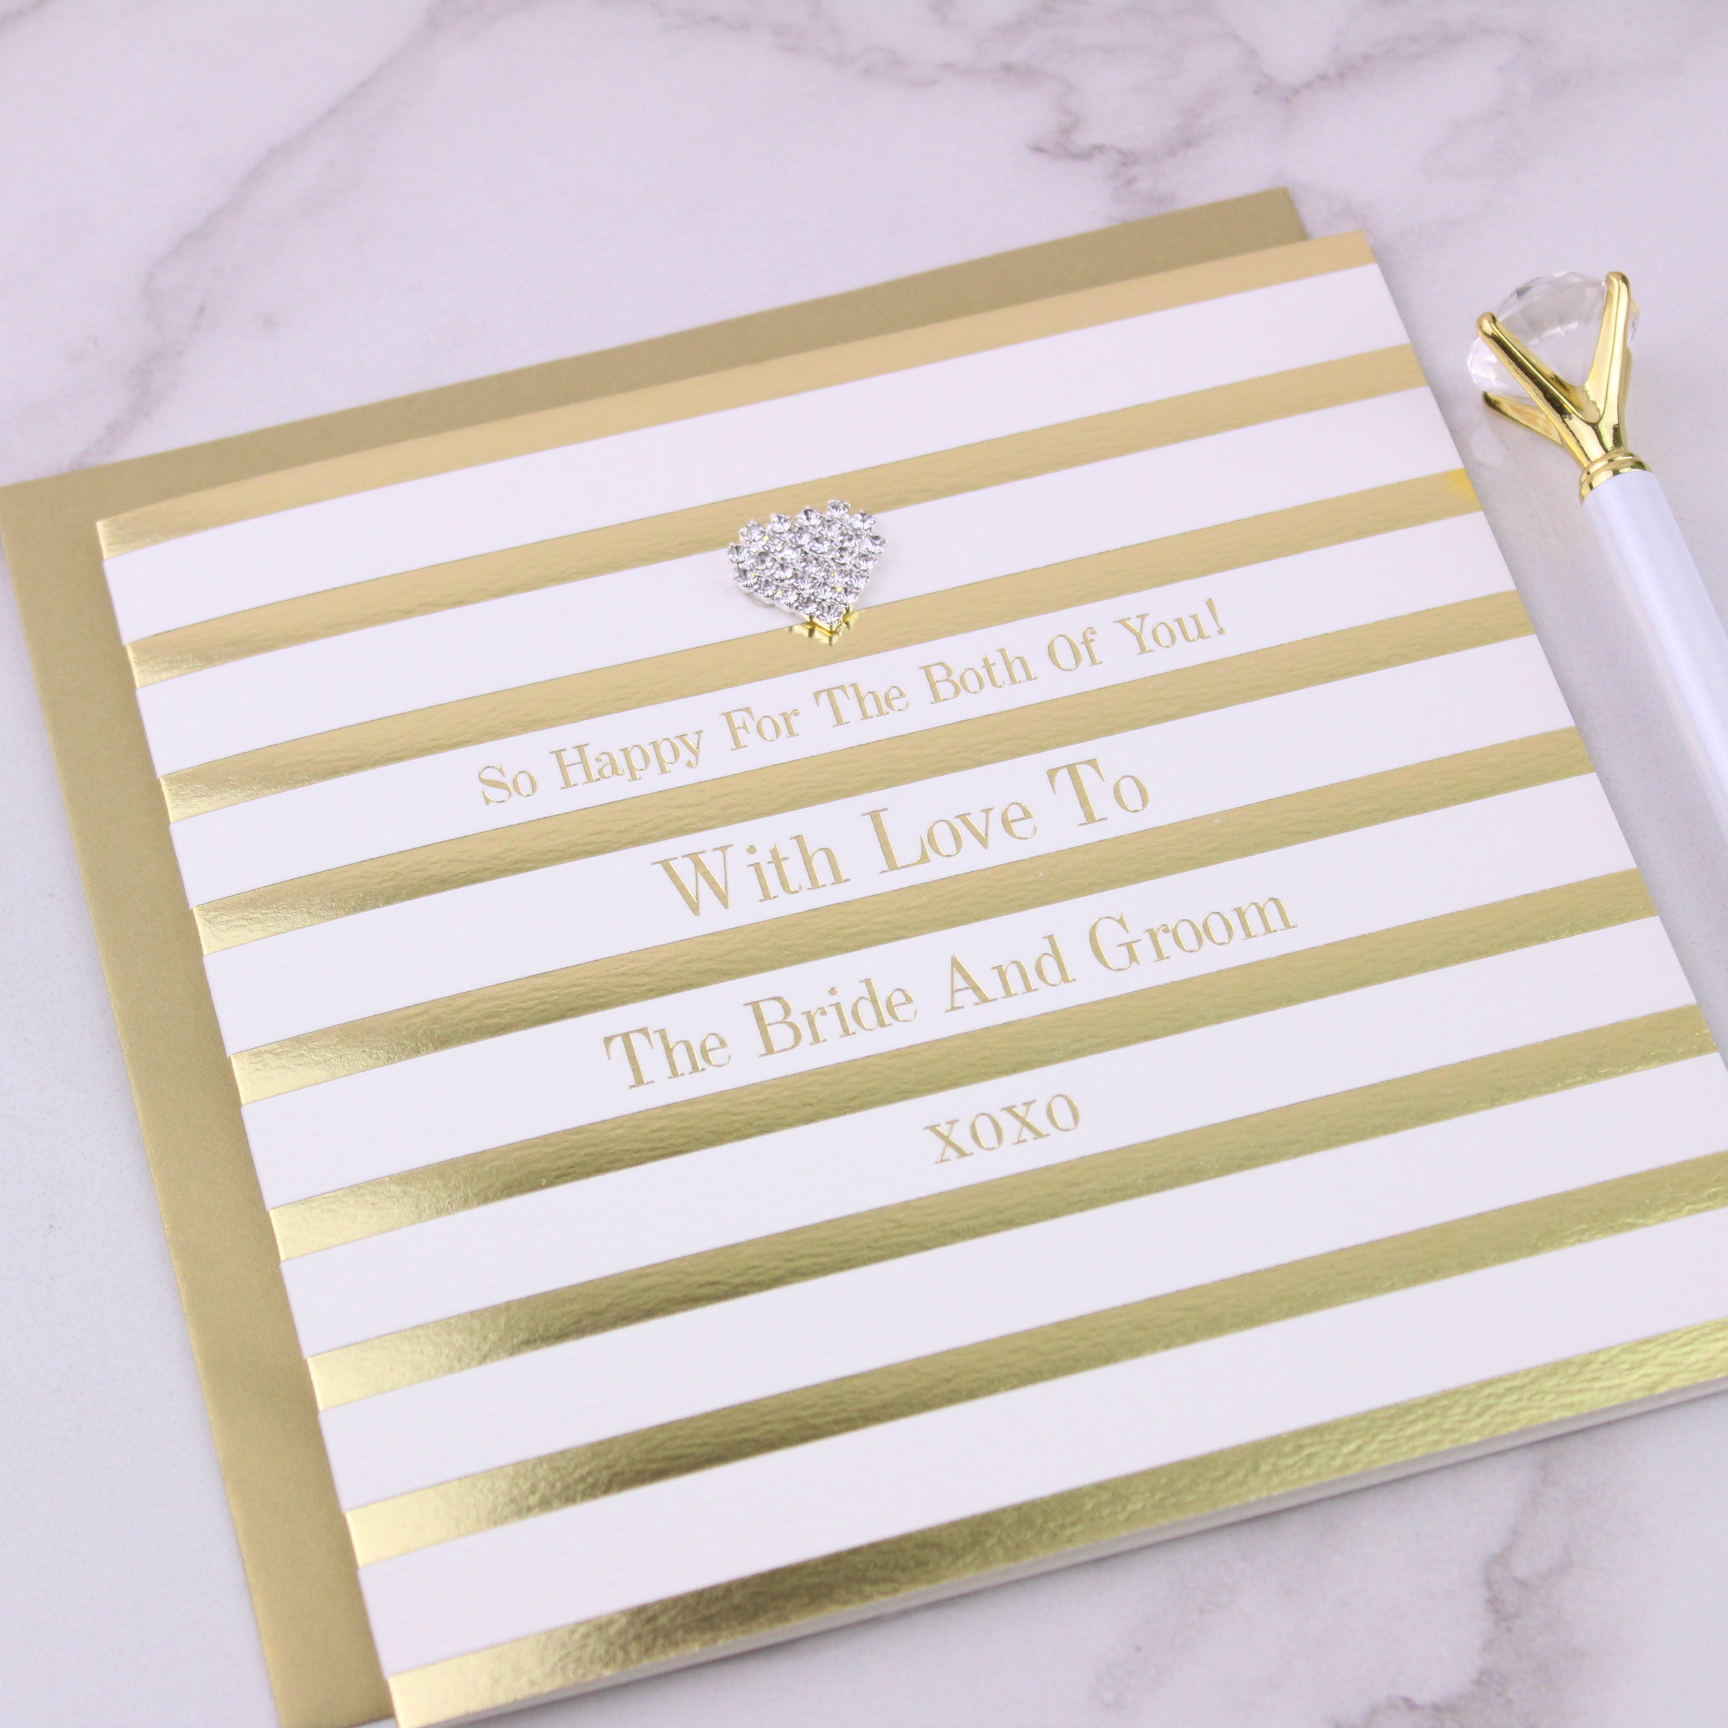 With Love to The Bride & Groom Wedding Card